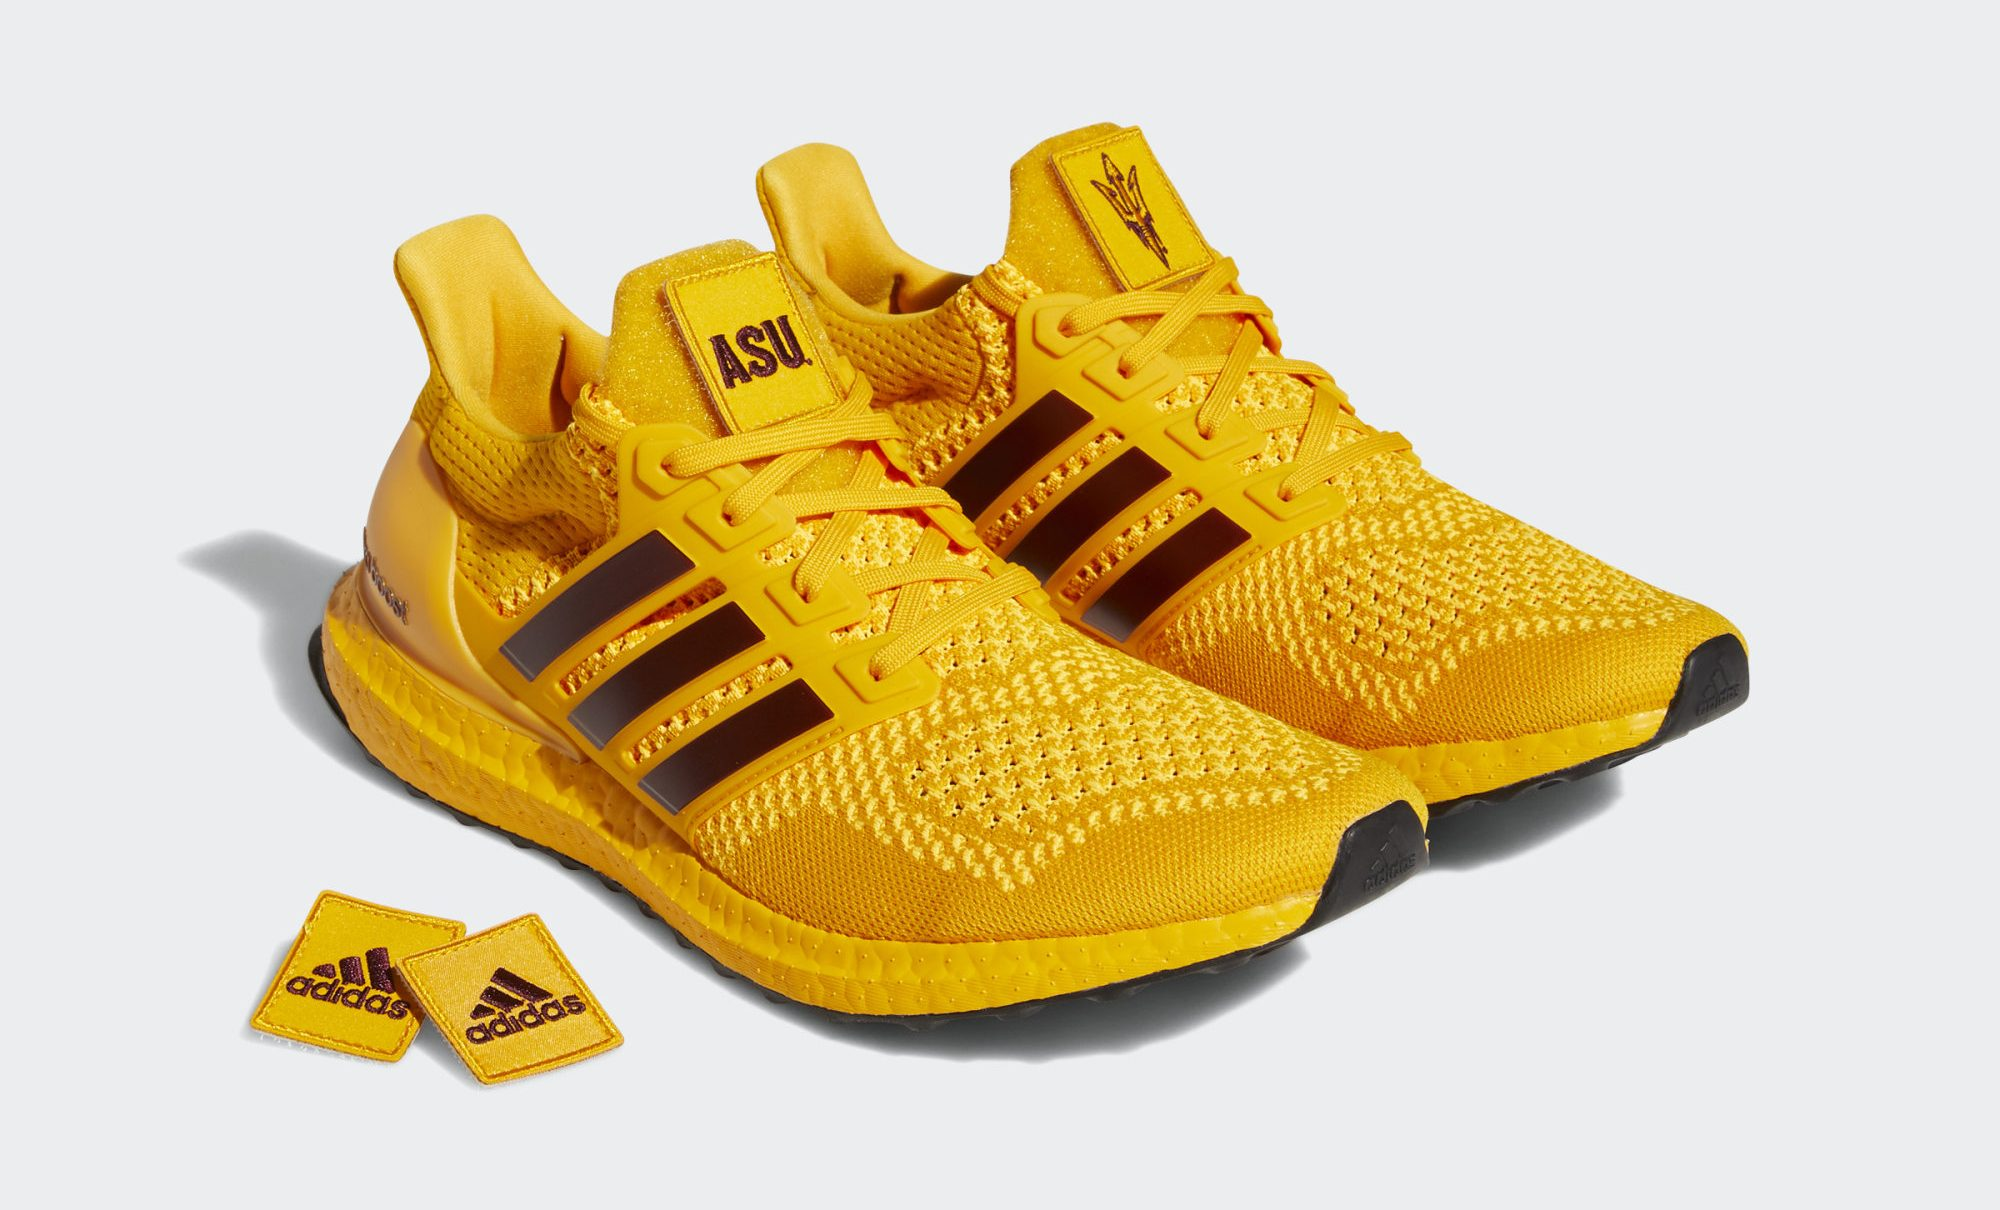 Adidas Ultra Boost 'College' Pack